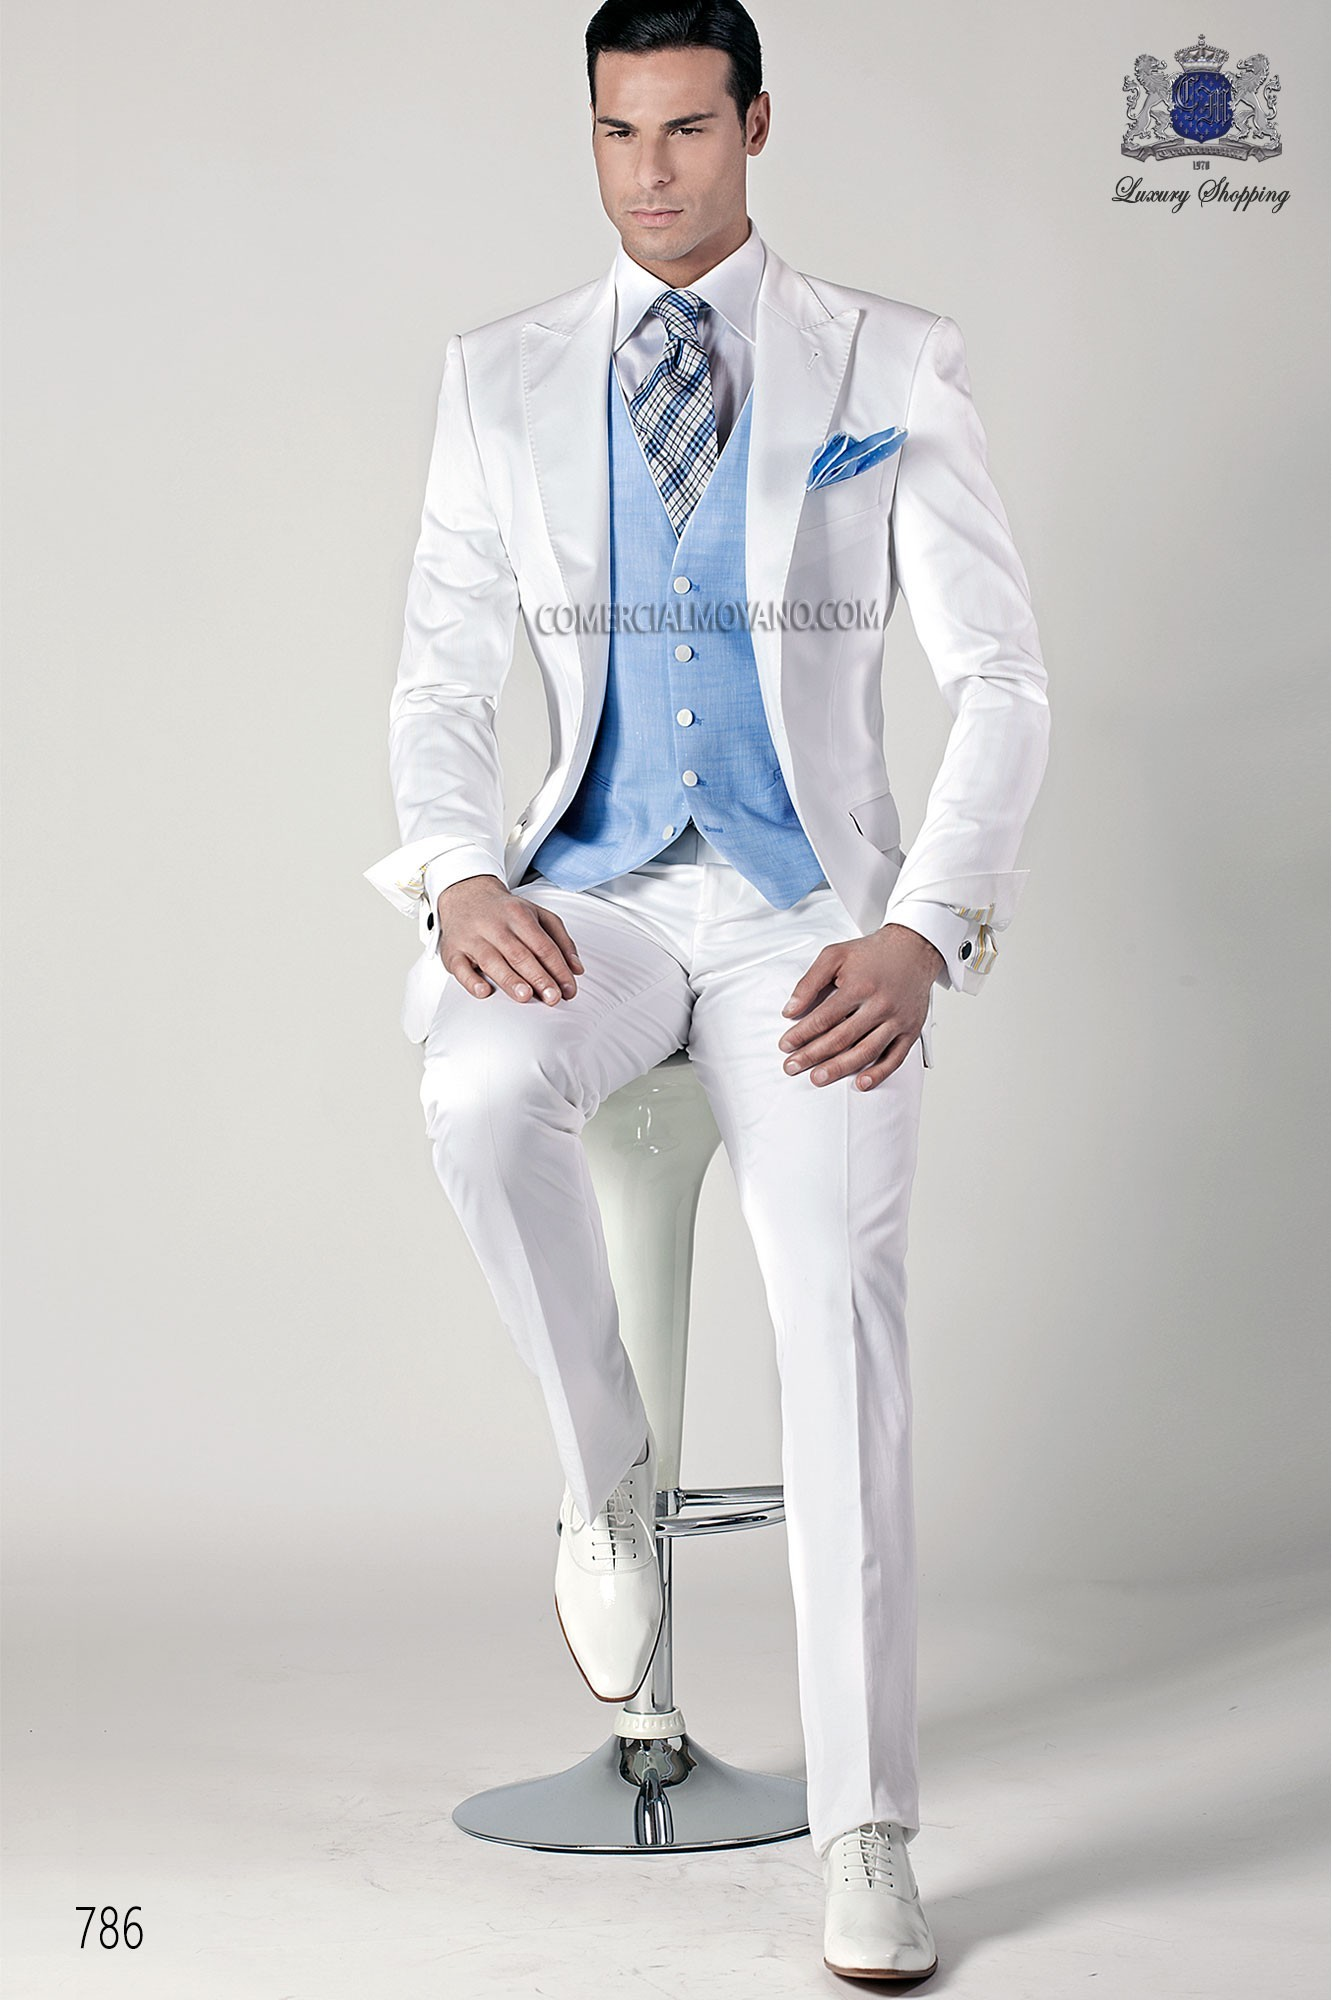 Hipster white men wedding suit model 786 Ottavio Nuccio Gala